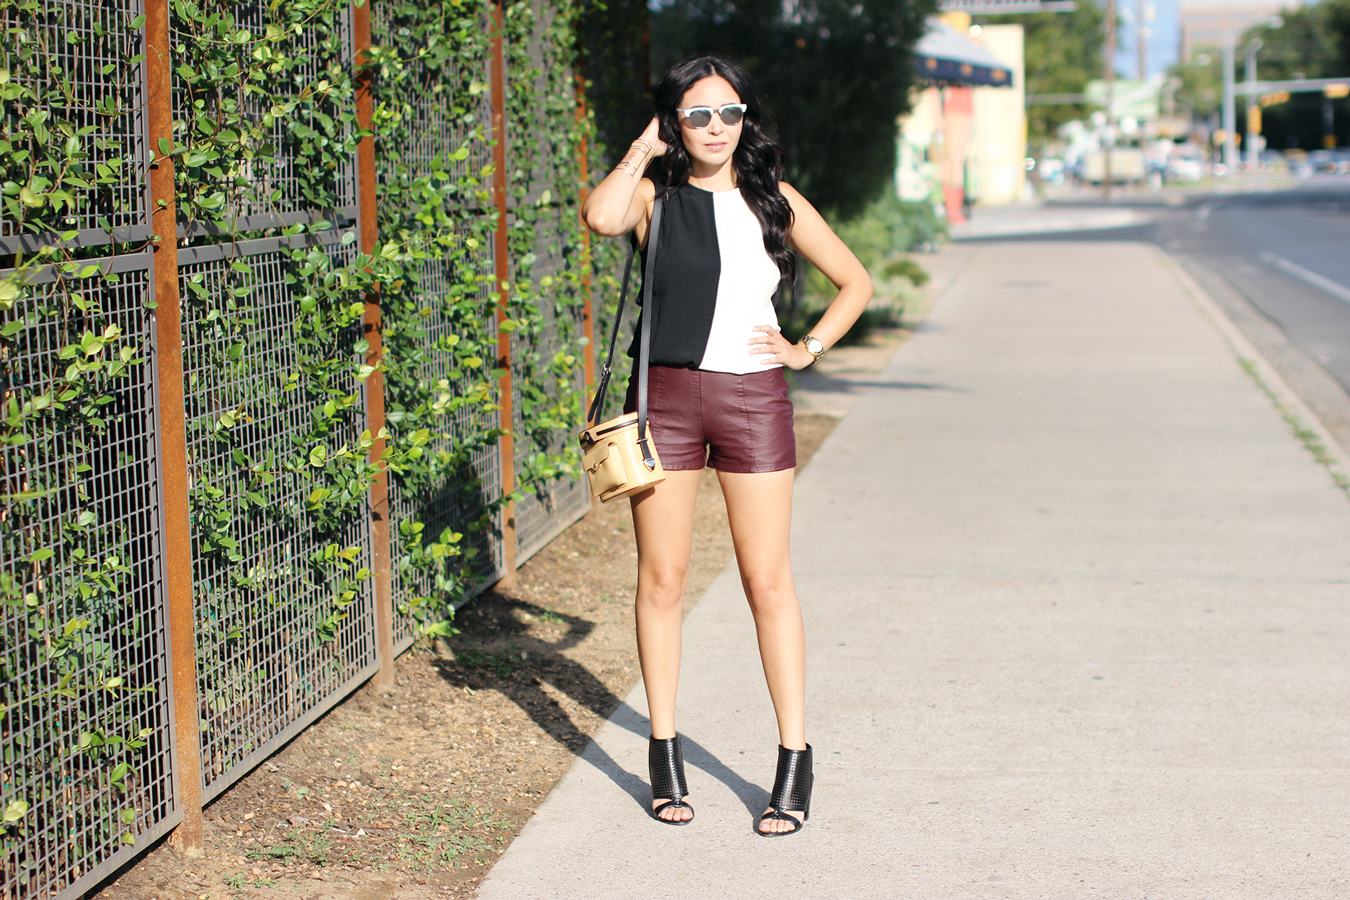 FIXIN-TO-THRILL-COLOR-BLOCK-LEATHER-SHORTS-CURLING-WAND-BLACK-WHITE-FALL-ATX-AUSTIN-STYLE-BLOG-SHIRTS-COLORS-TRENDS-FW15-TRENDY-CHIC-GLAM-FASHION-TEXAS-5